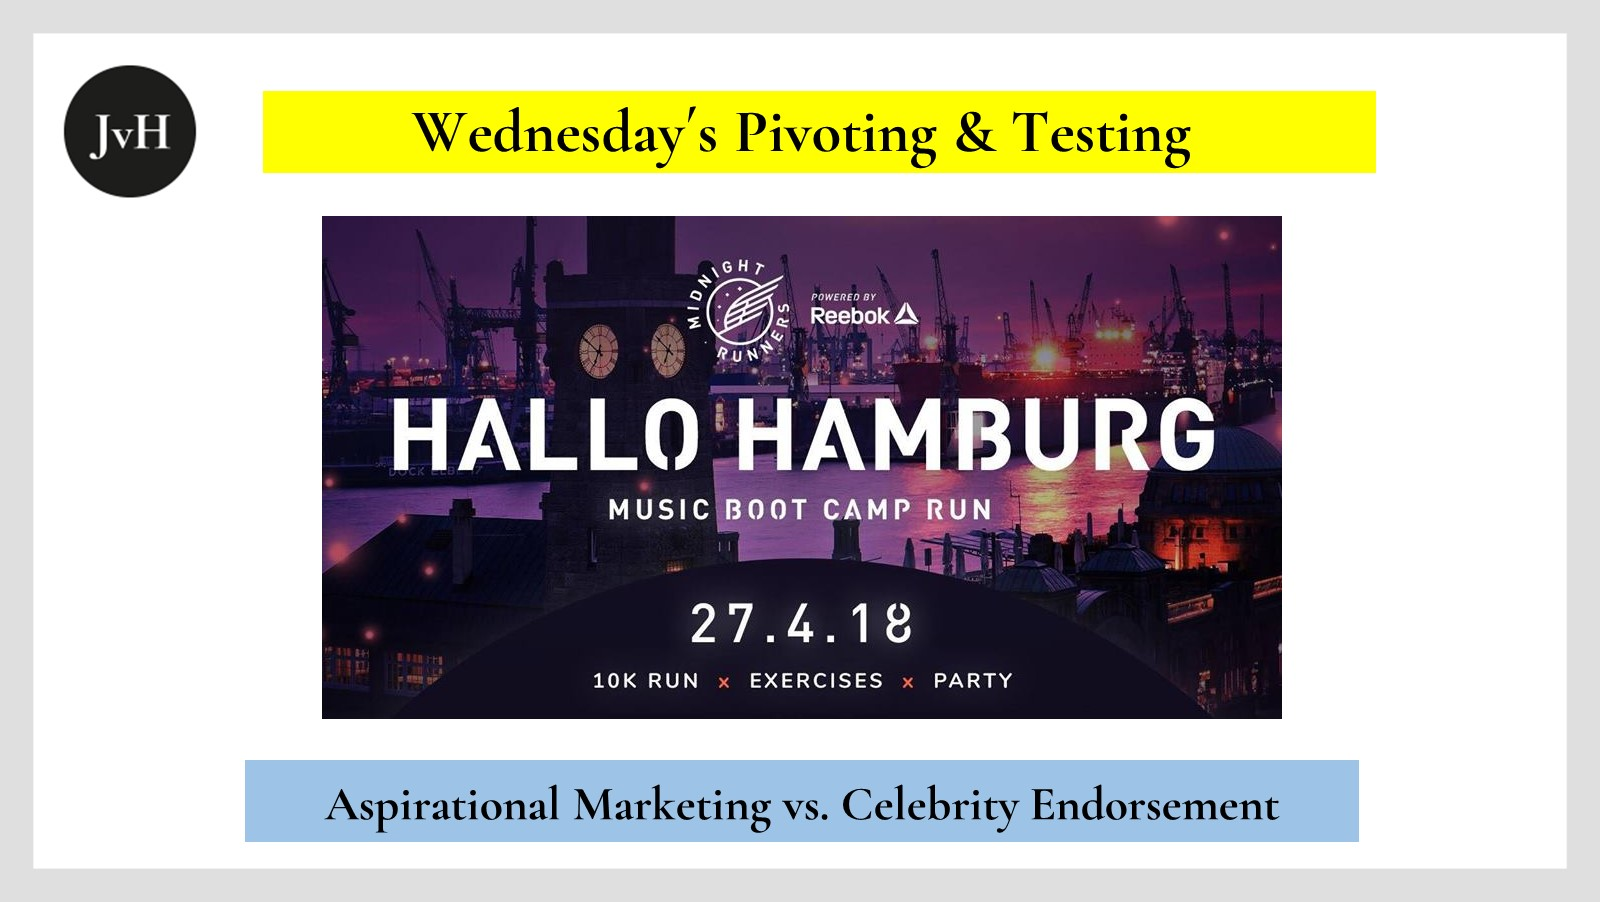 Hallo Hamburg Music Boot Camp Run Invitation sponsored by Reebok as an example of alternatives to conventional celebrity endorsement marketing strategies